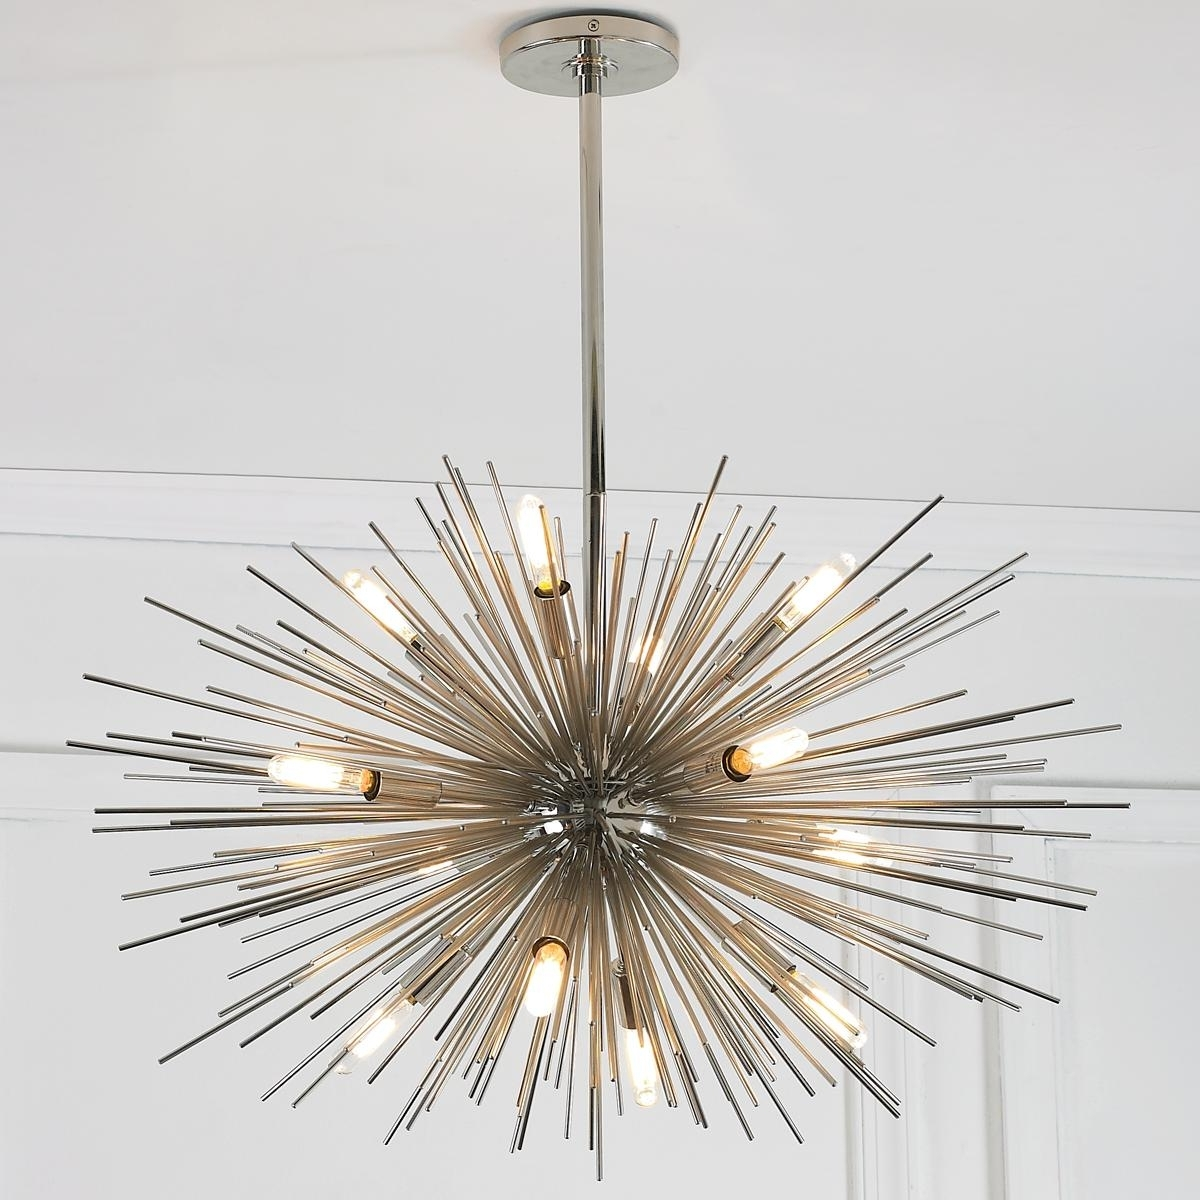 Trendy Gold Modern Chandelier – Chandelier Designs Intended For Gold Modern Chandelier (View 13 of 15)